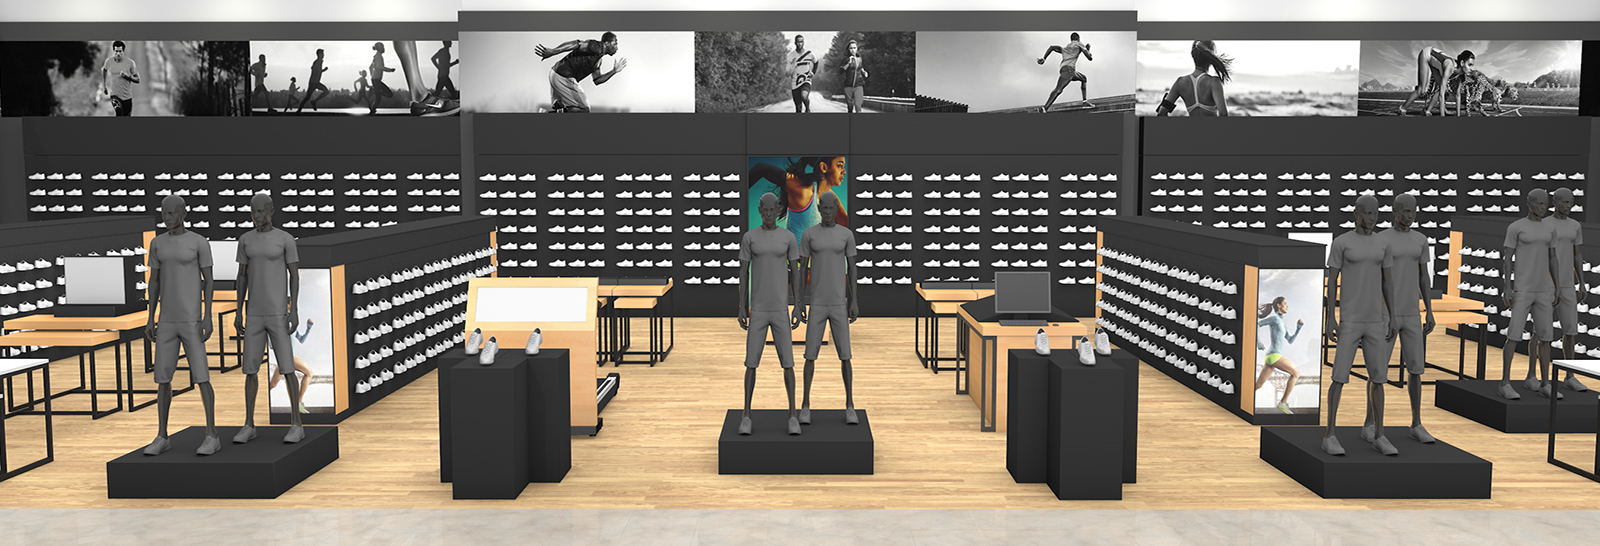 A rendered view of the entire area before The Bernard Groups designs for Adidas to live within a larger sporting goods retailer.